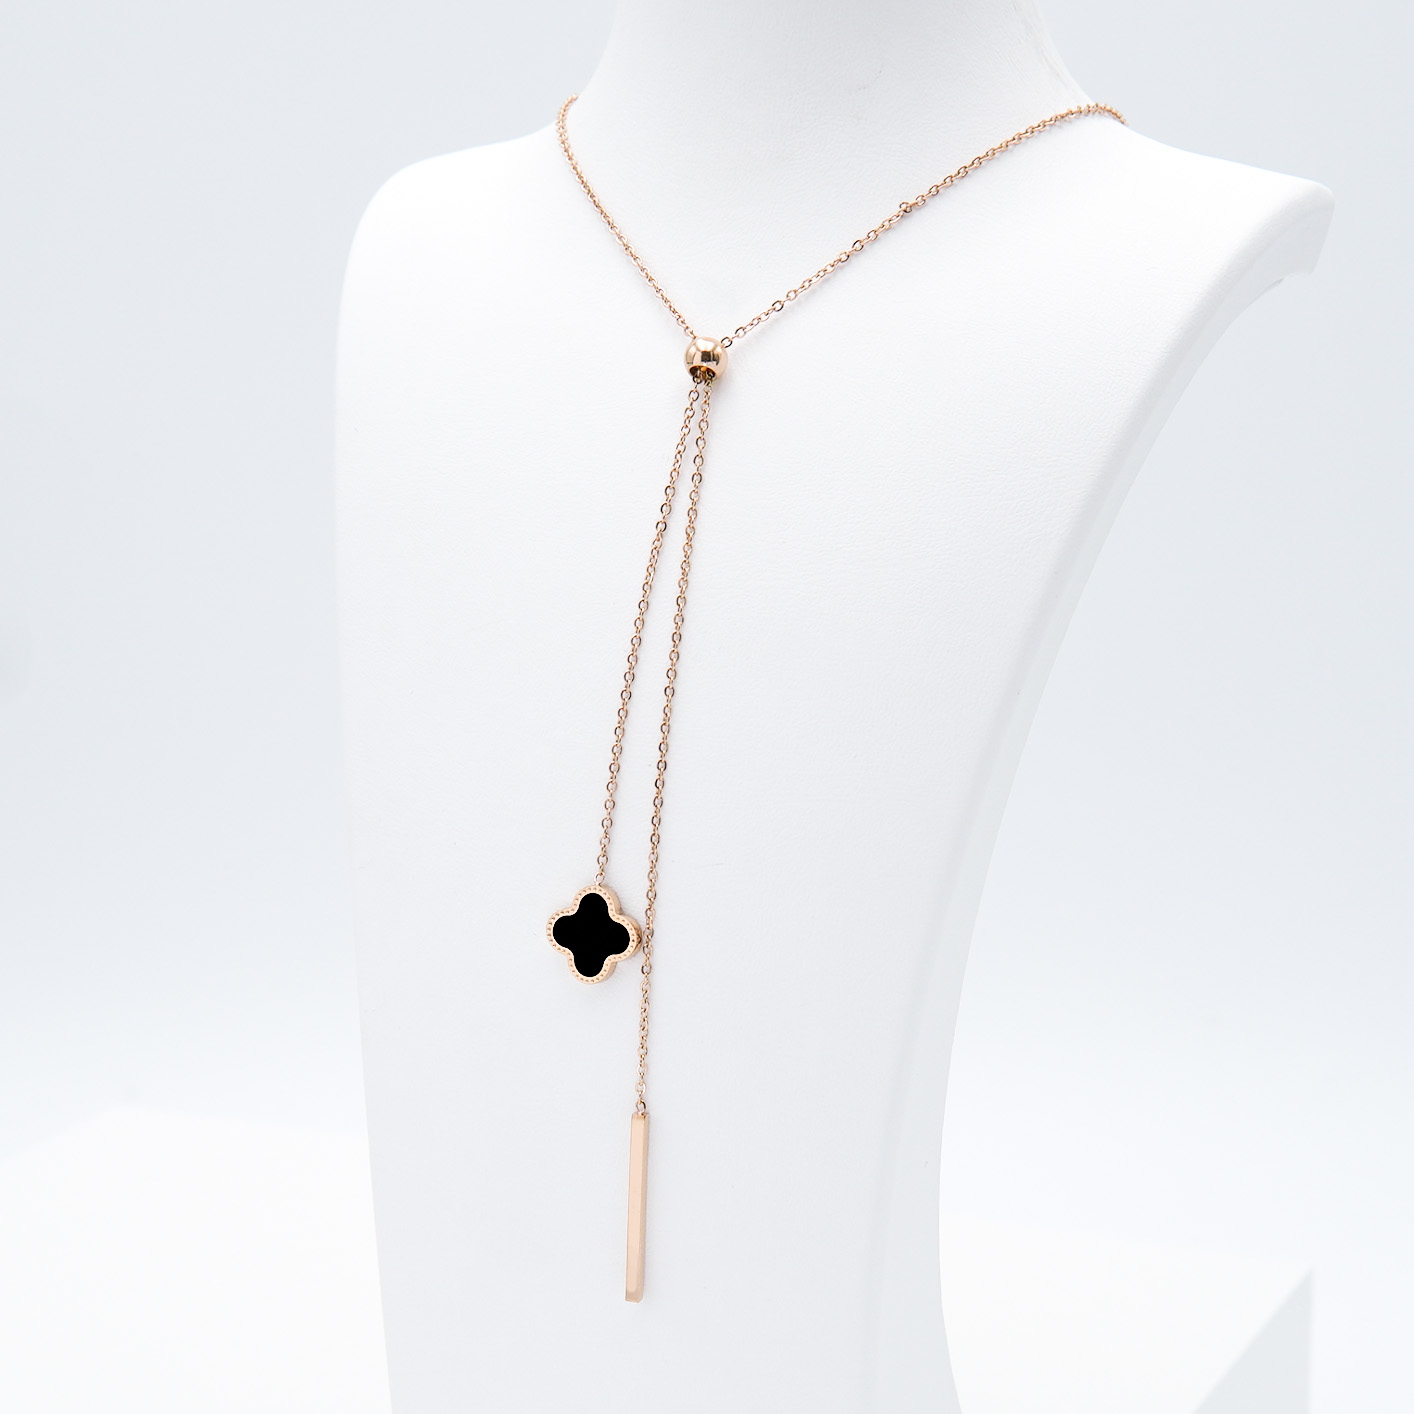 2- Clover Grace Brace Rose Edition Halsband Modern and trendy Necklace and women jewelry and accessories from SWEVALI fashion Sweden